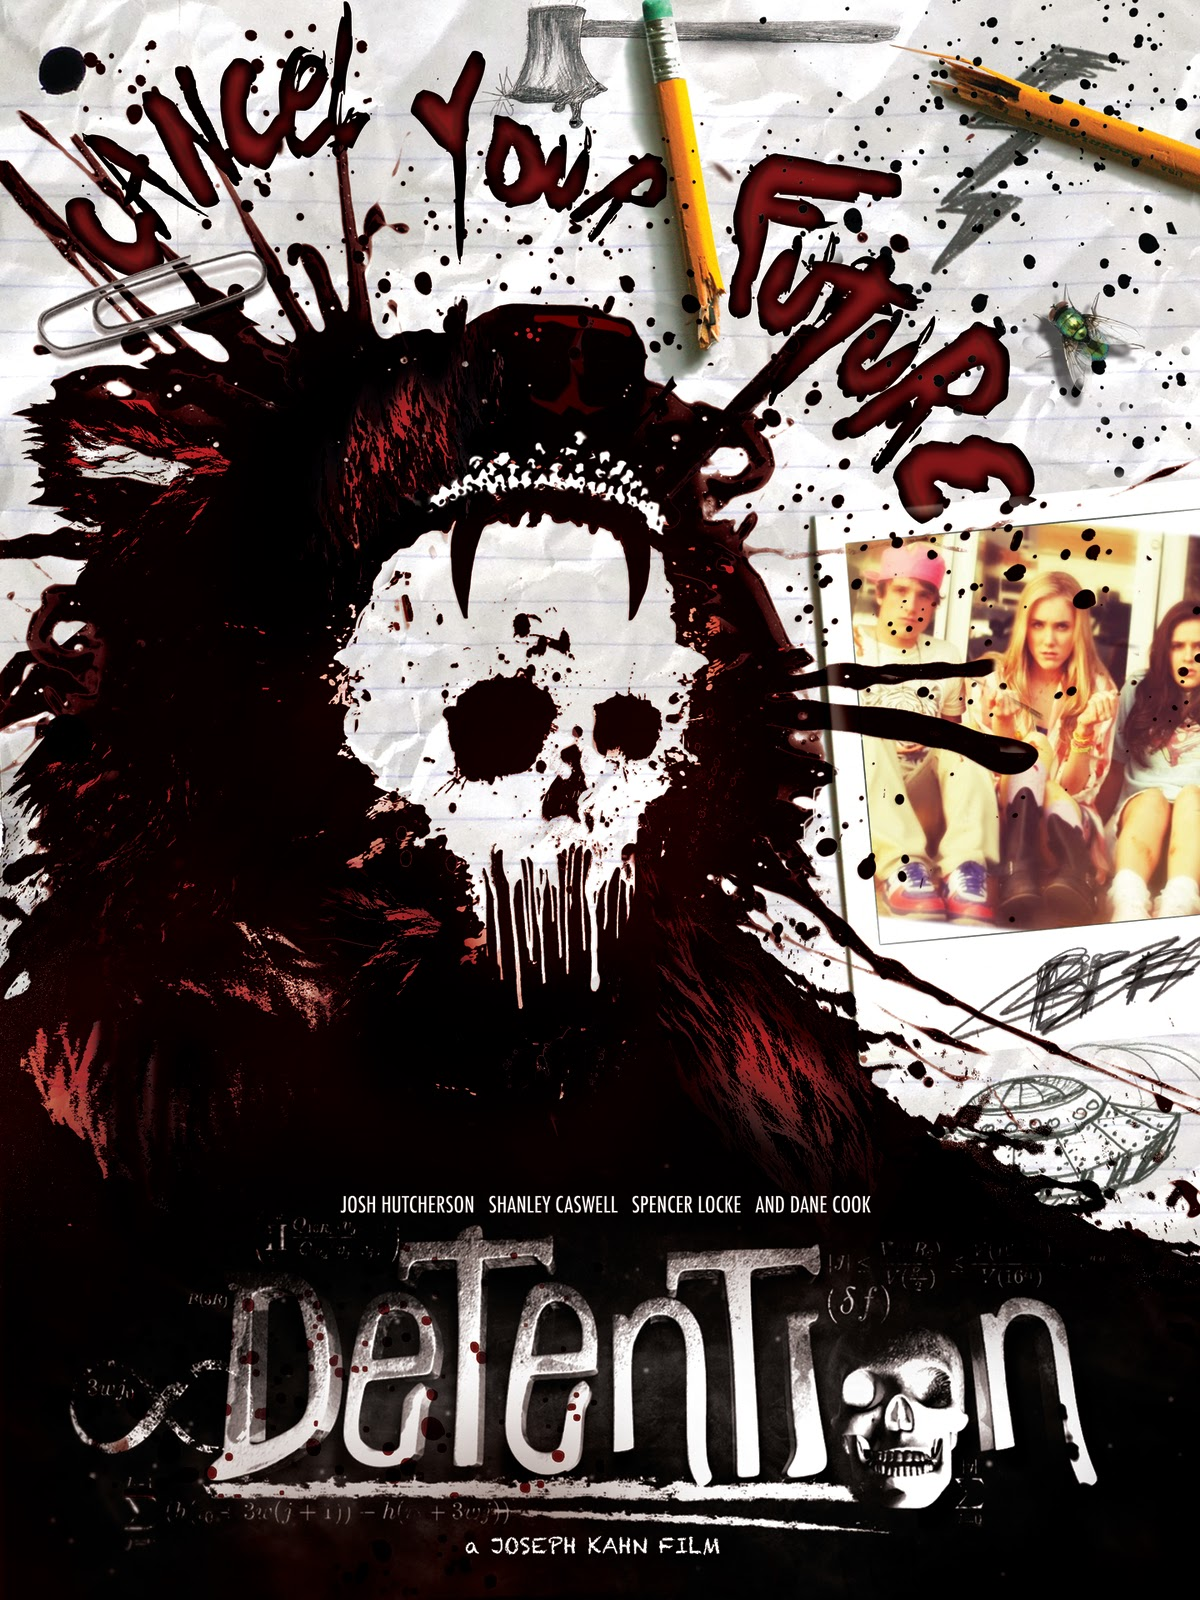 http://2.bp.blogspot.com/-LmgIZTCJh0s/Tvb1YuUHdwI/AAAAAAAAGQ8/k_QTMxIi94s/s1600/o-movie-trailer-and-poster-for-the-teen-horror-comedy-detention.jpg